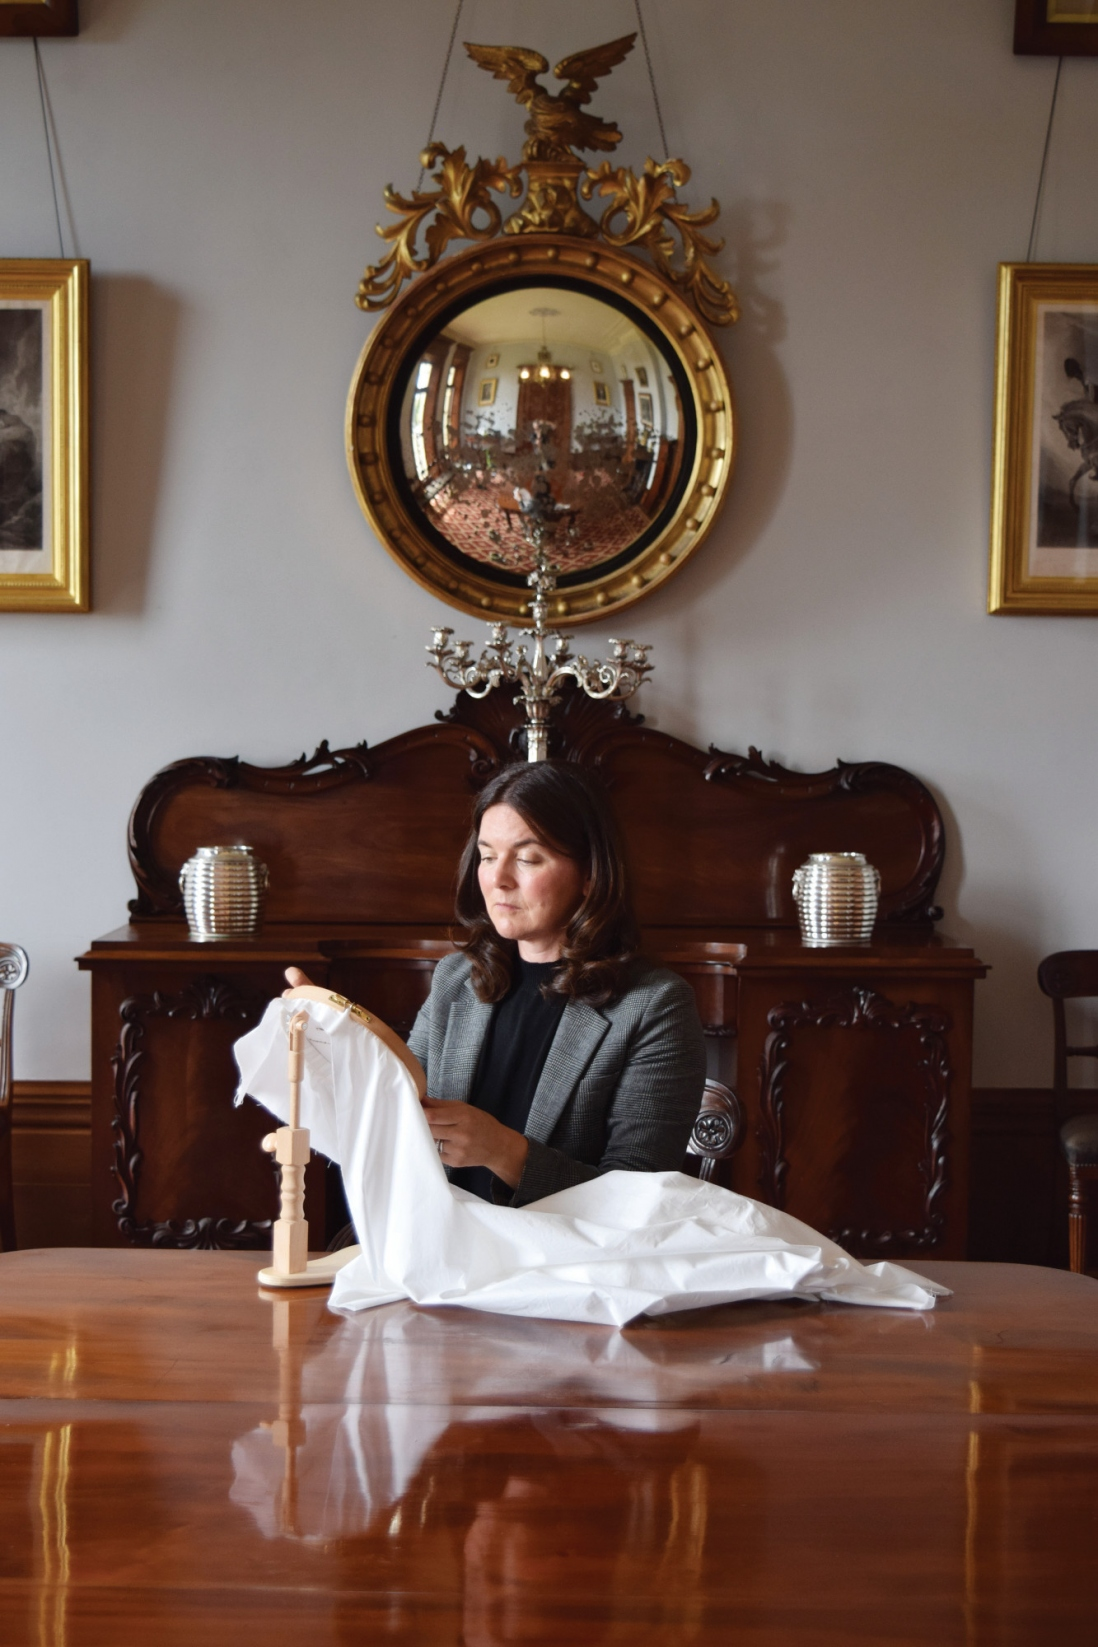 Woman seated at table holding up white fabric, with circular mirror and sideboard behind her.